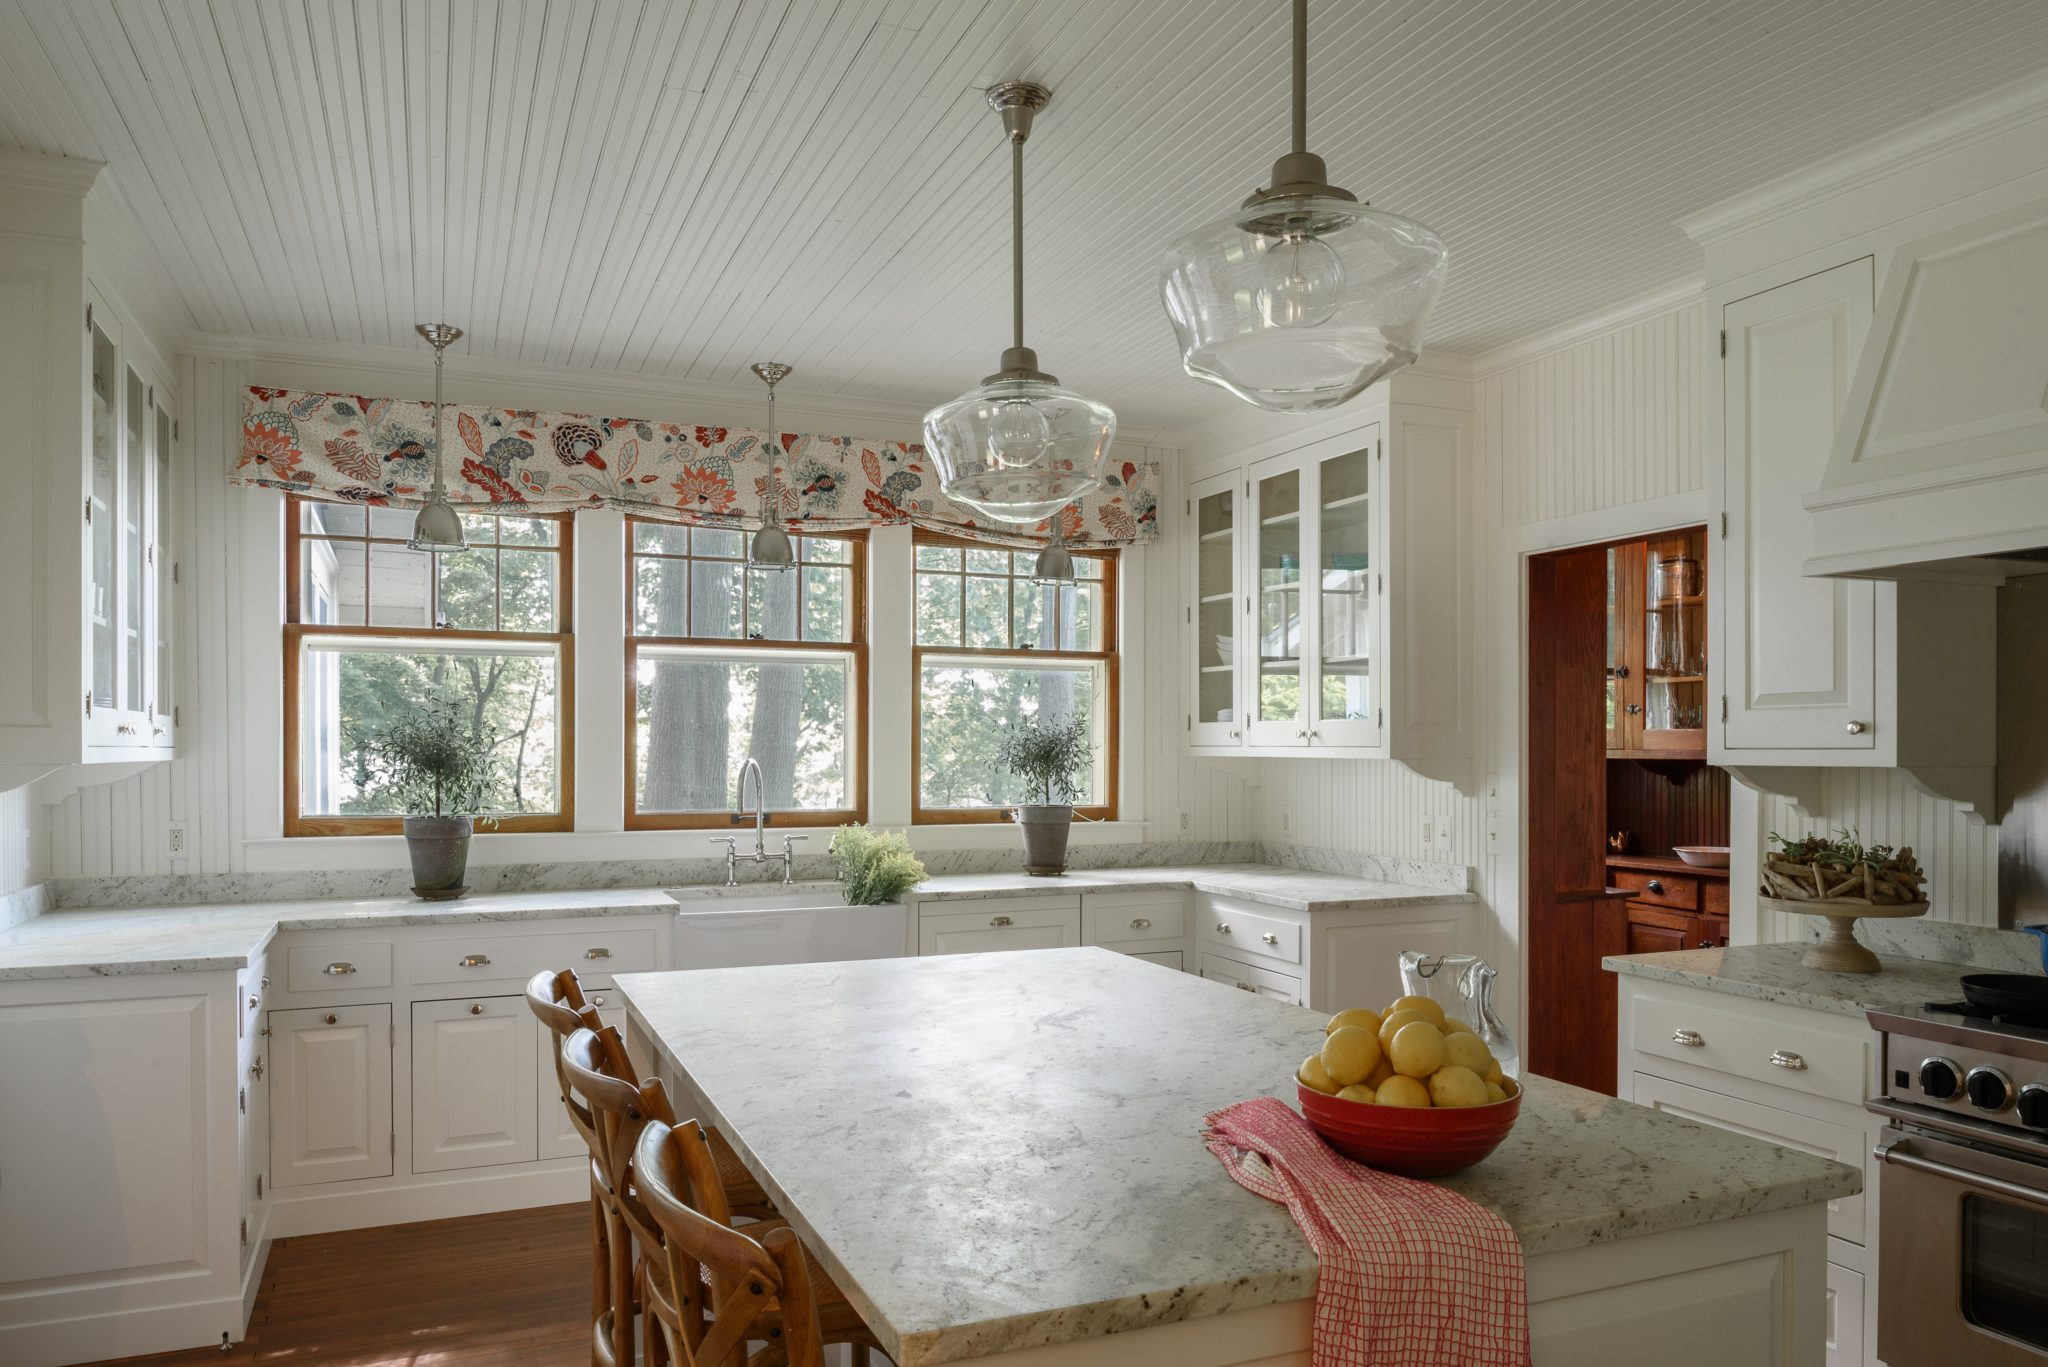 Lake Michigan cottage: renovated kitchen and original butler's pantry. By Buccellato Design, LLC